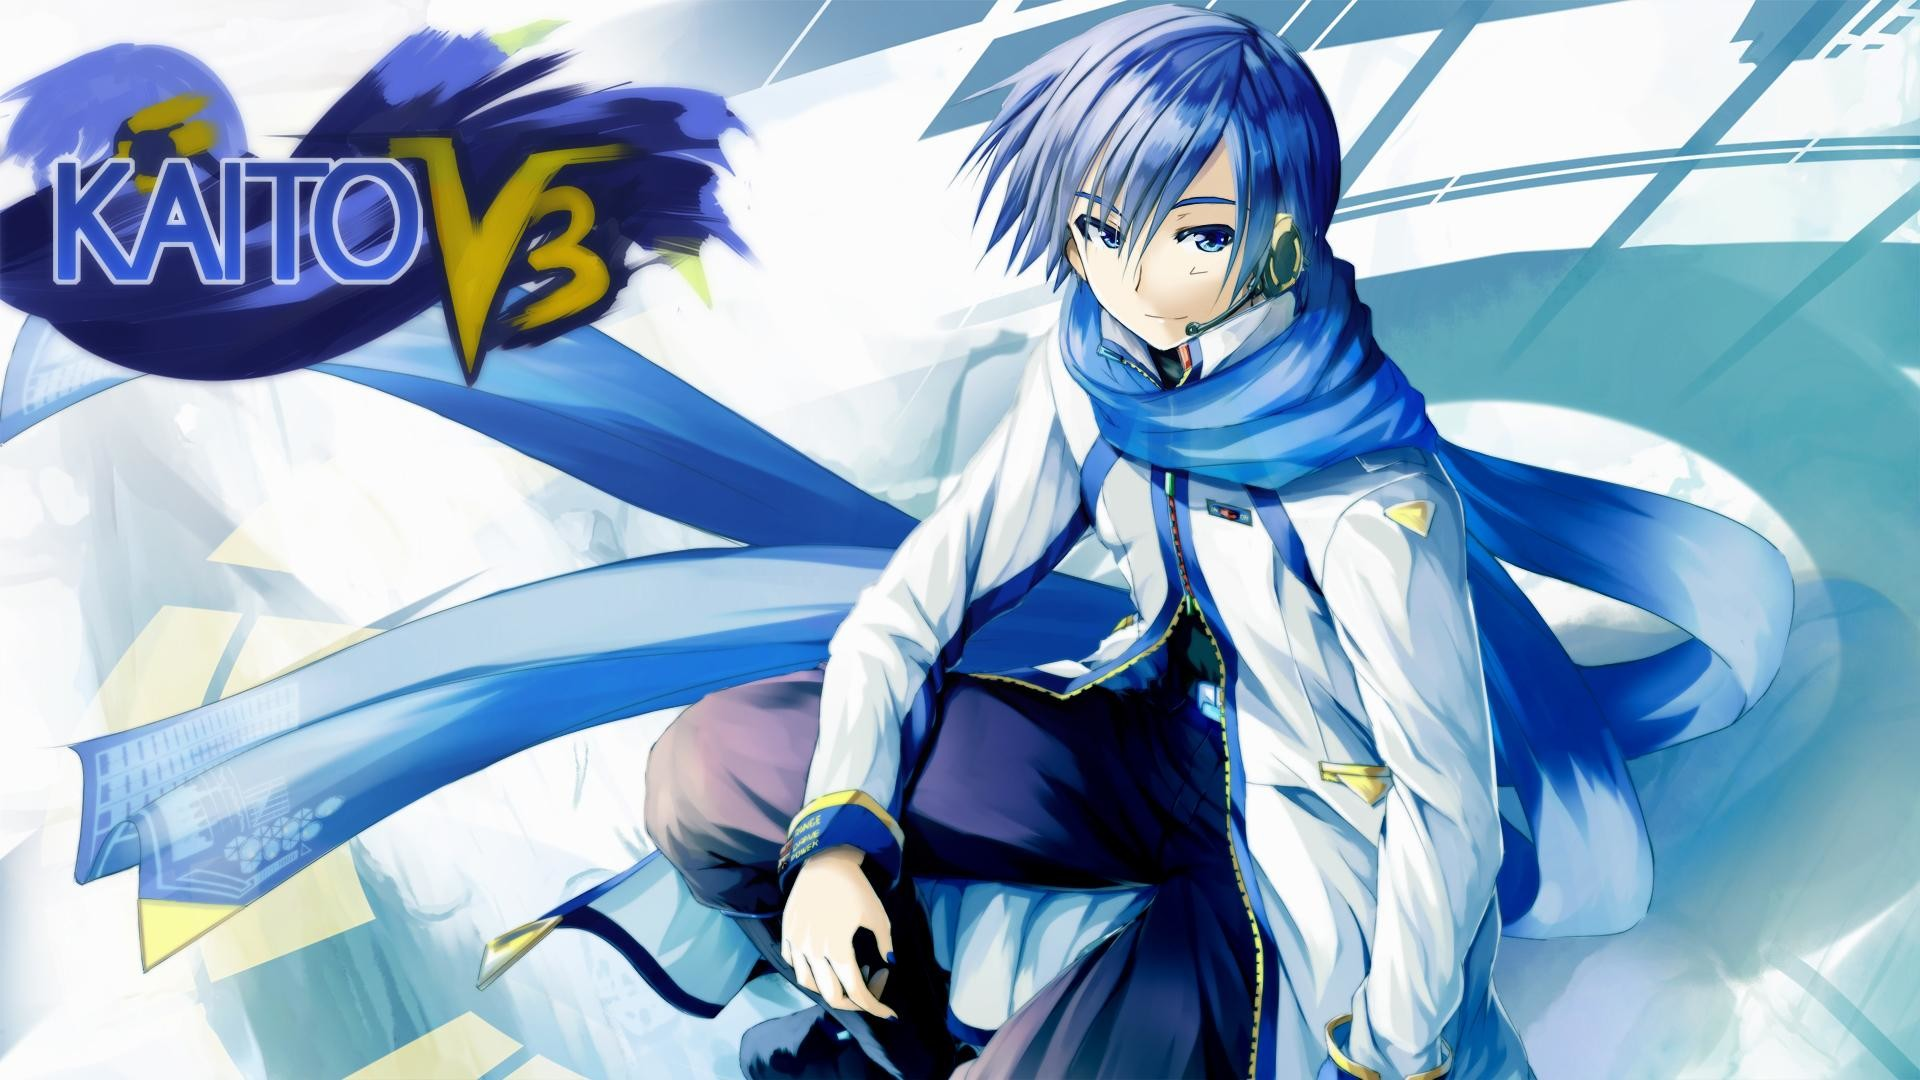 1920x1080 HD-Kaito-Vocaloid-Wallpapers